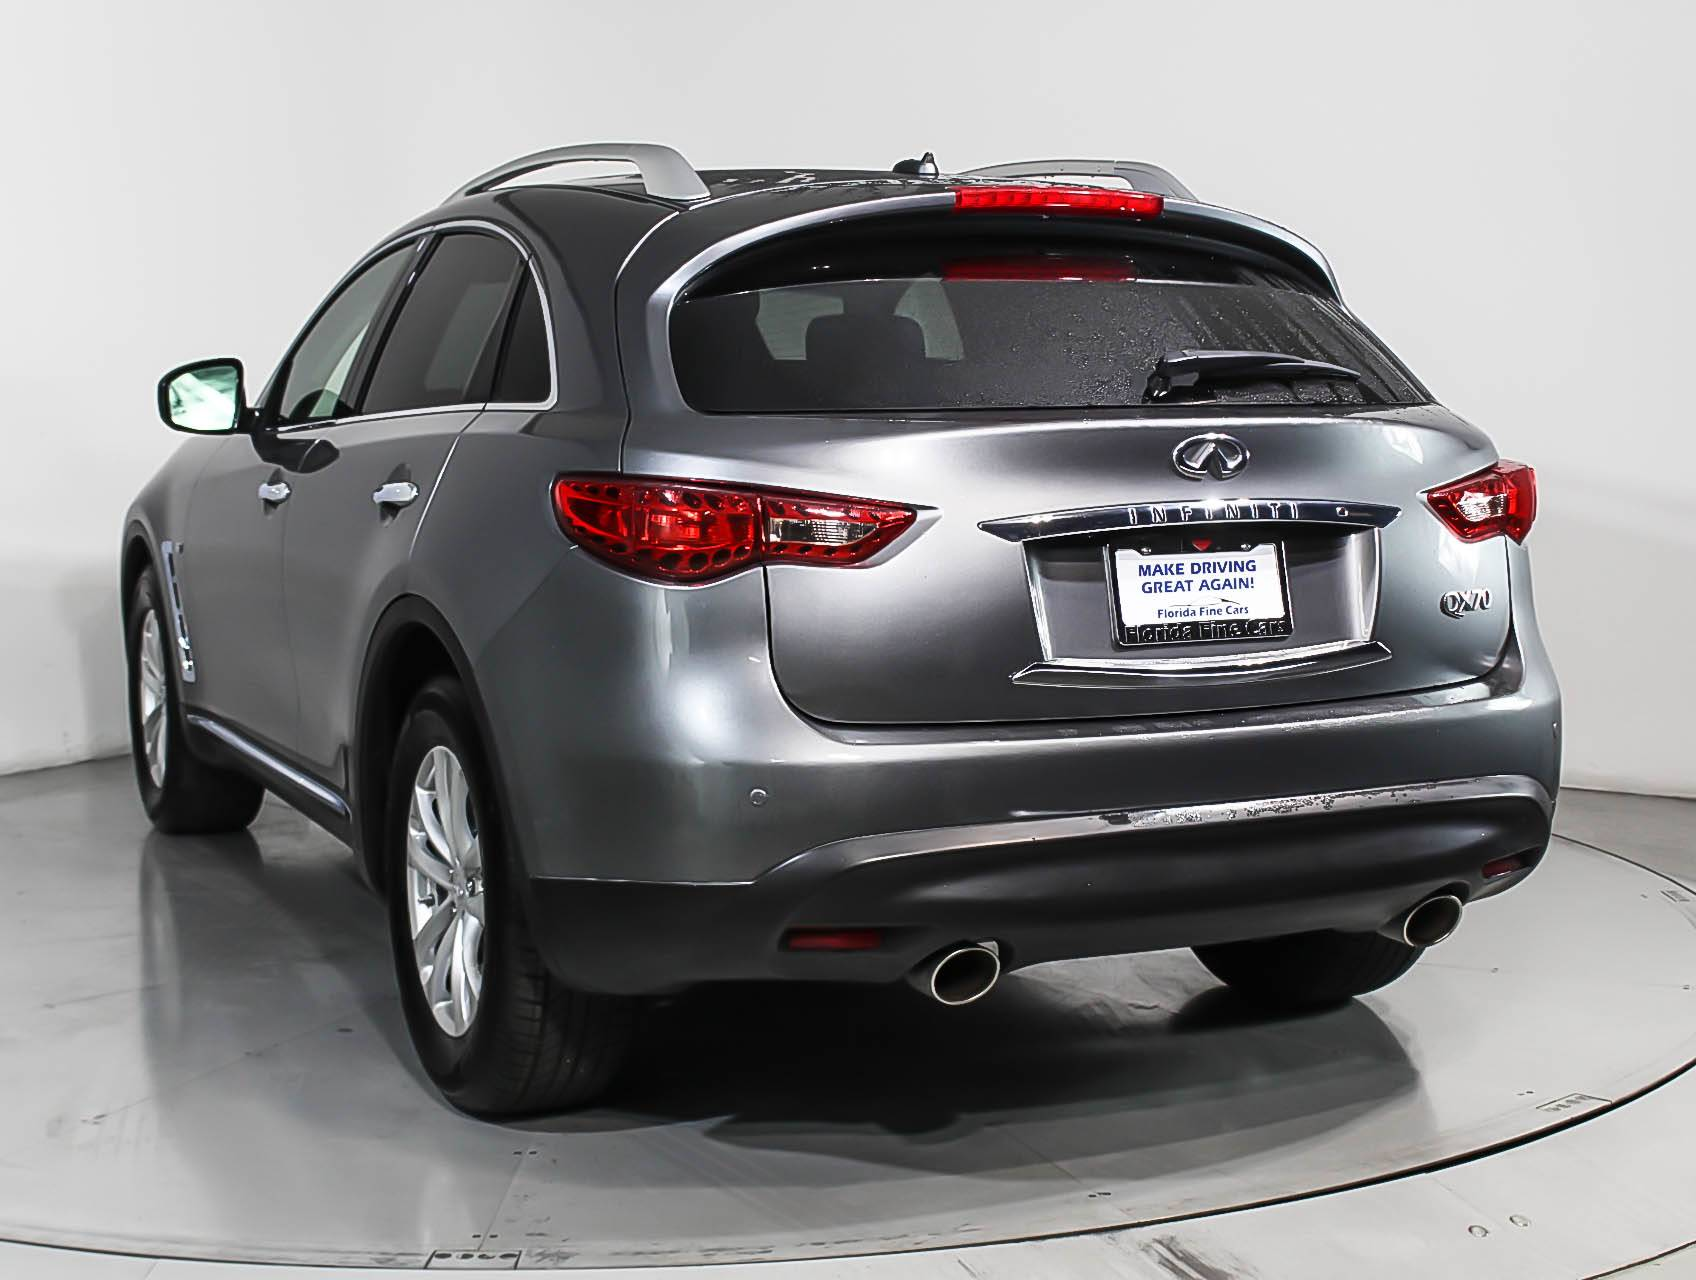 Used 2017 INFINITI QX70 SUV For Sale In MARGATE, FL